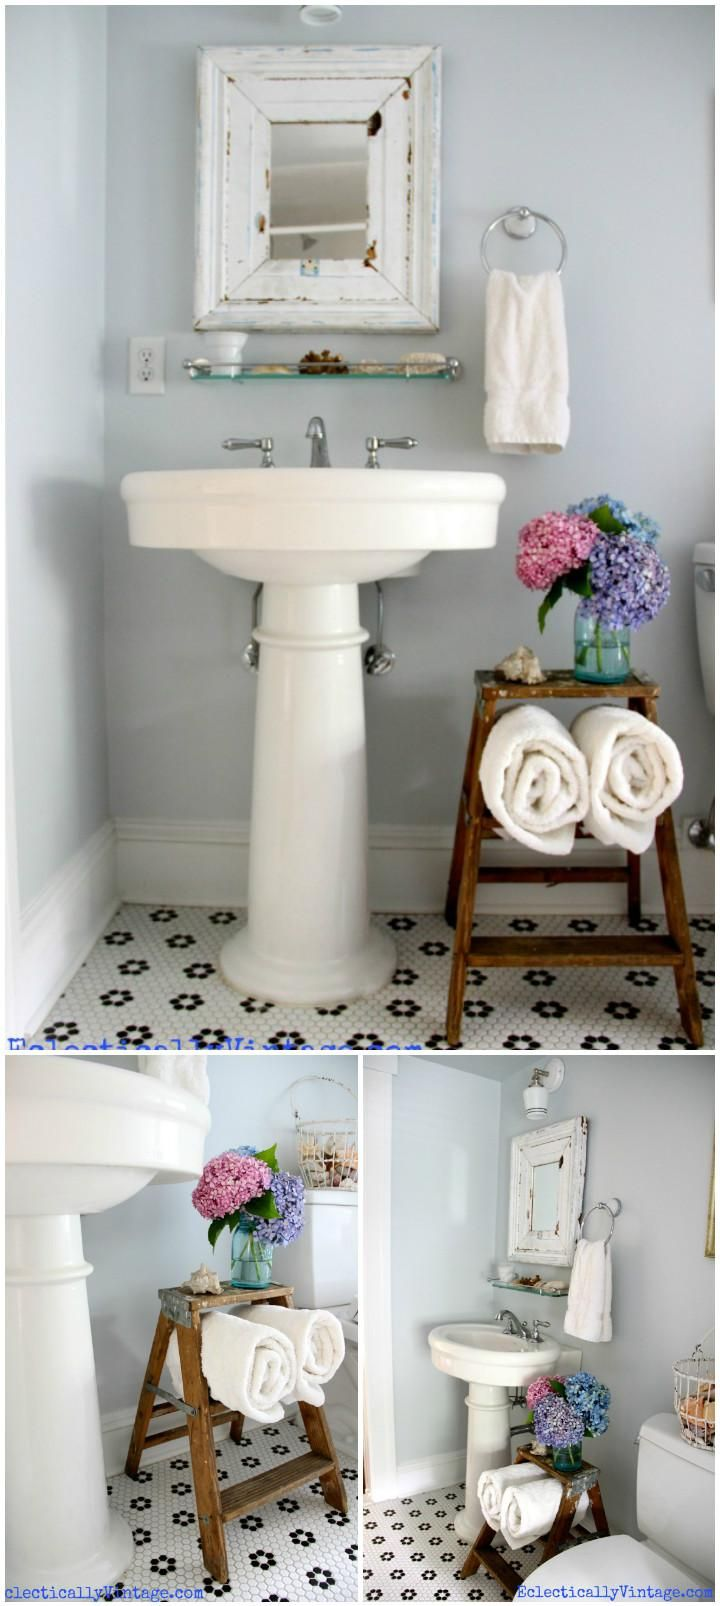 50 Diy Bathroom Projects To Remodel Step By Step Page 5 Of 6